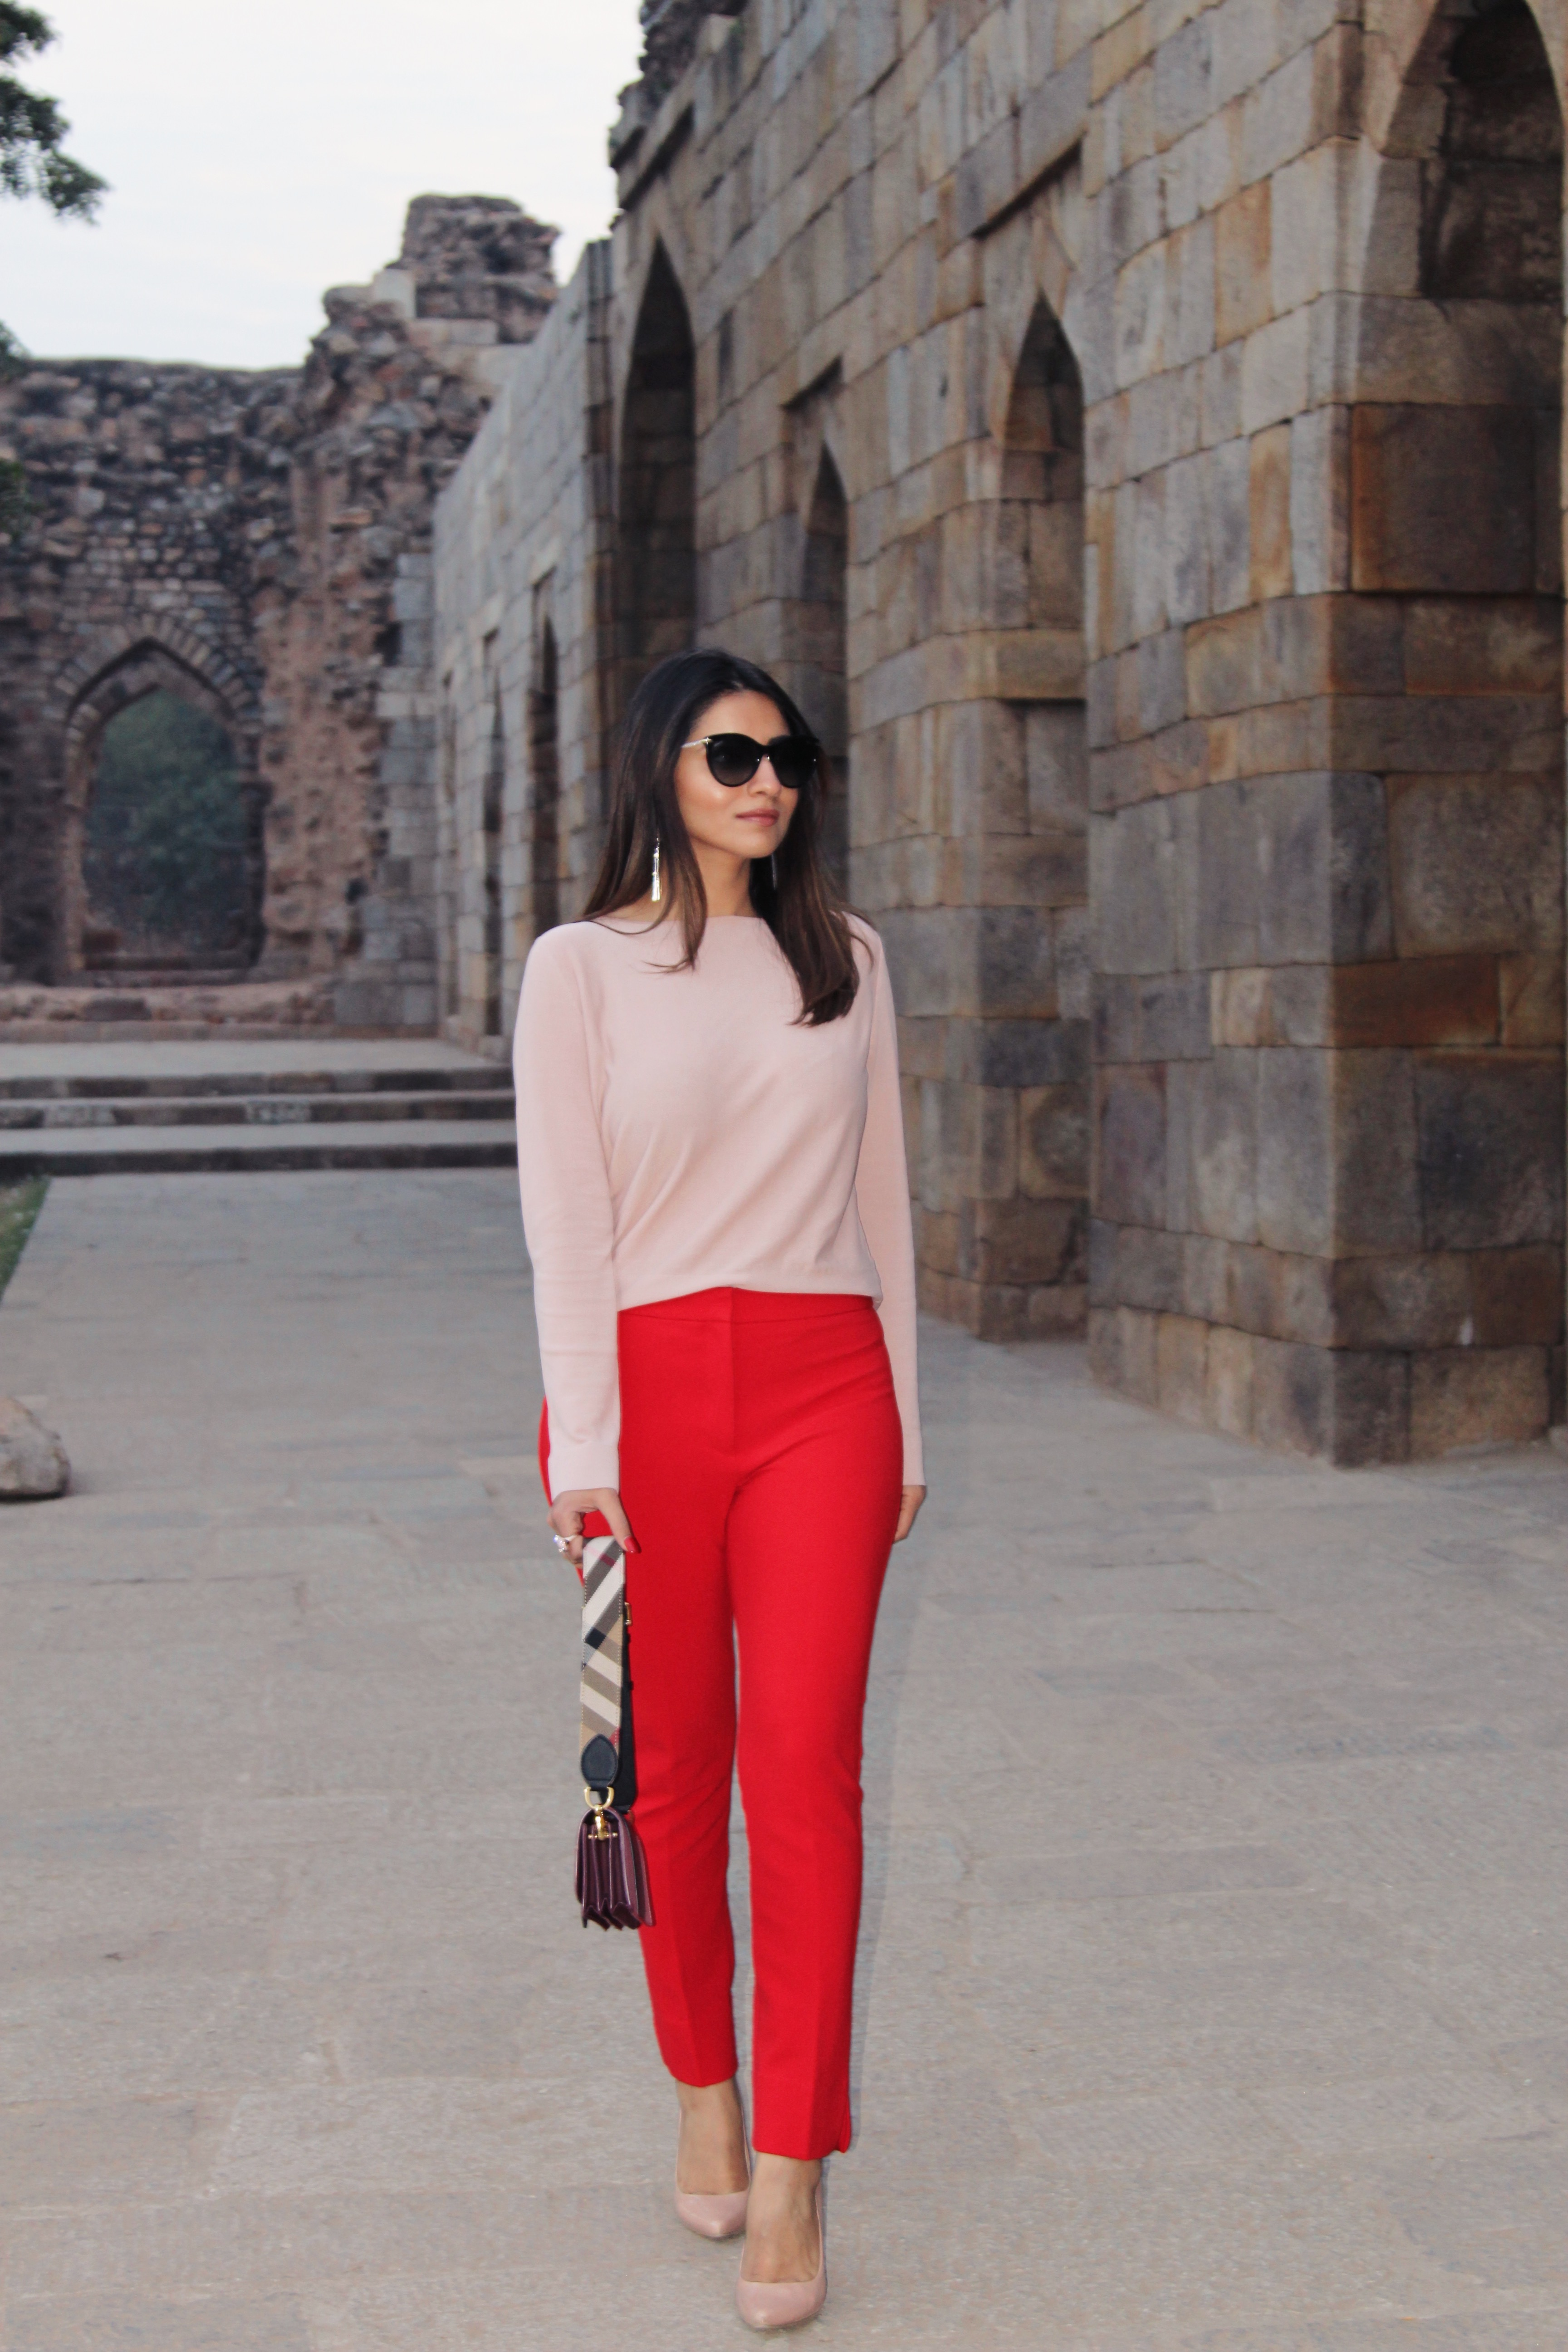 Color Crush: Pink & Red